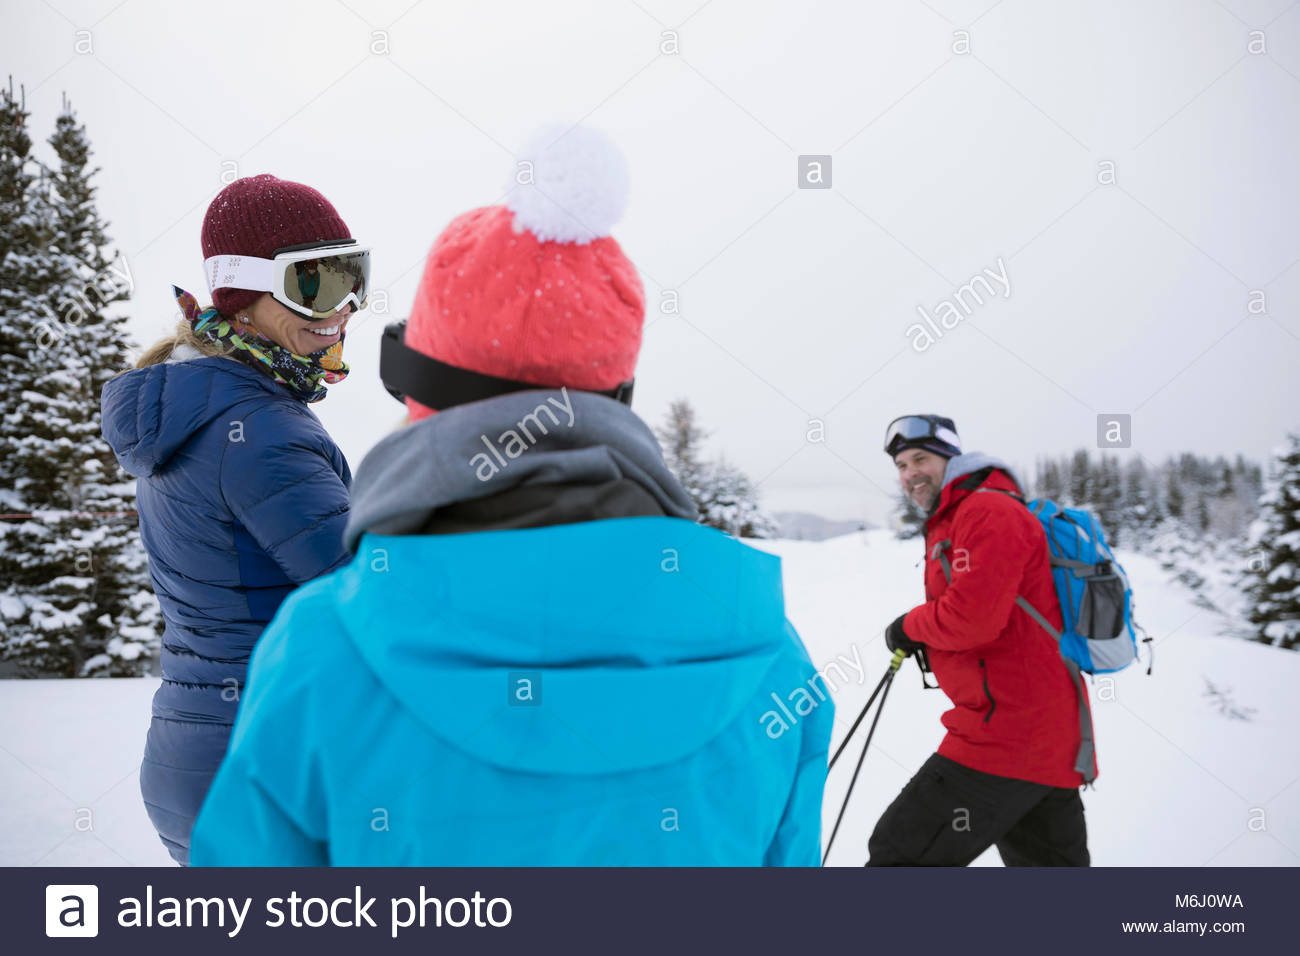 Family snowshoeing in snow - Stock Image